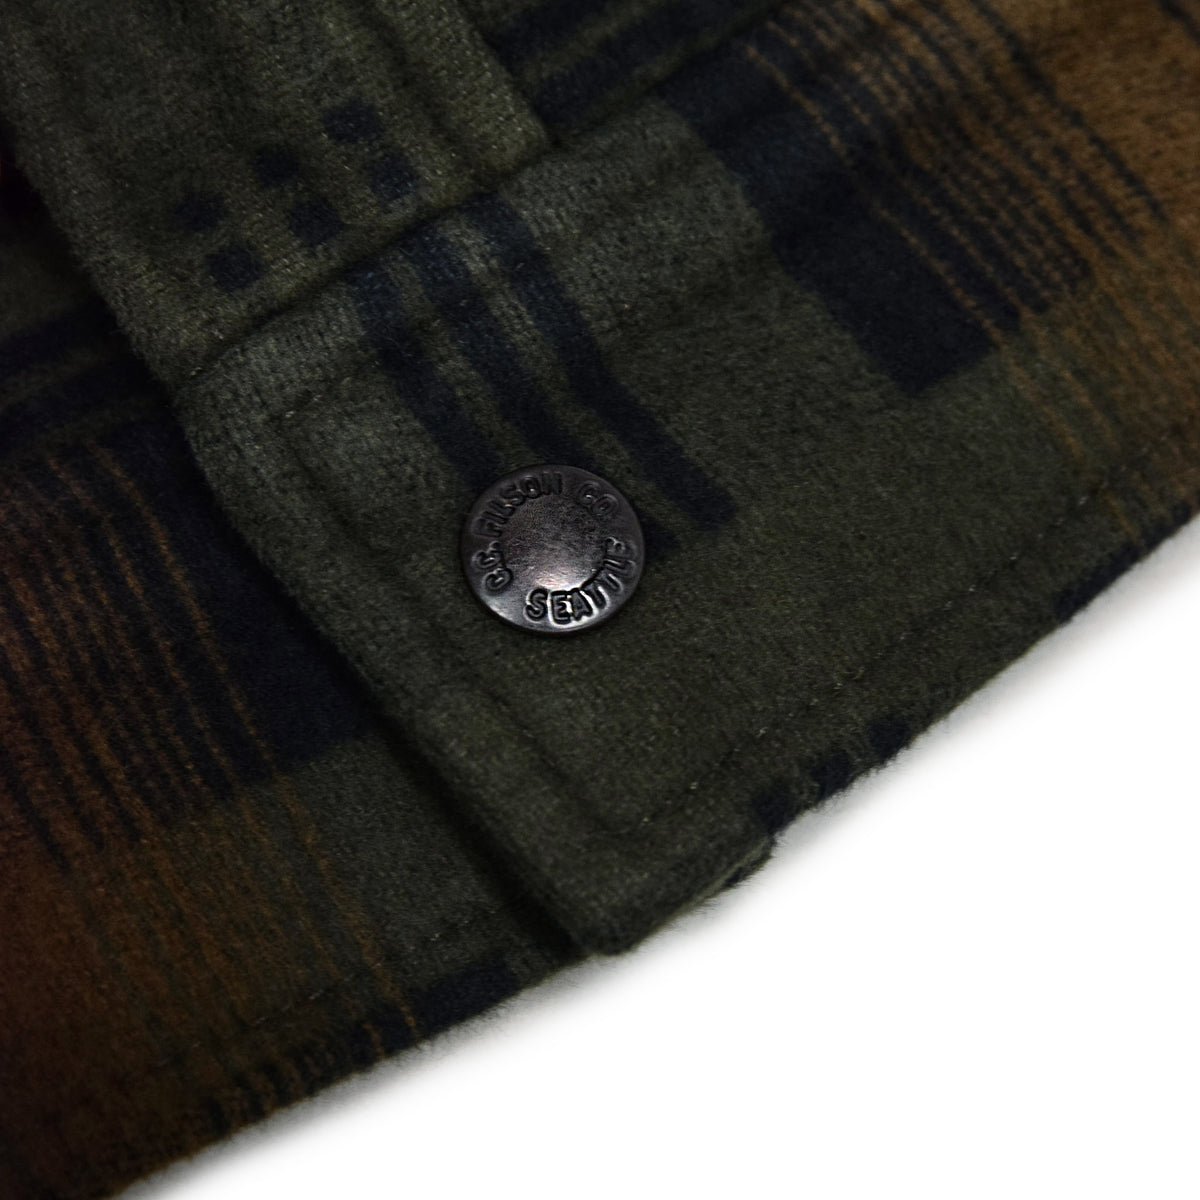 Filson Beartooth Cotton Camp Jacket Black Olive button